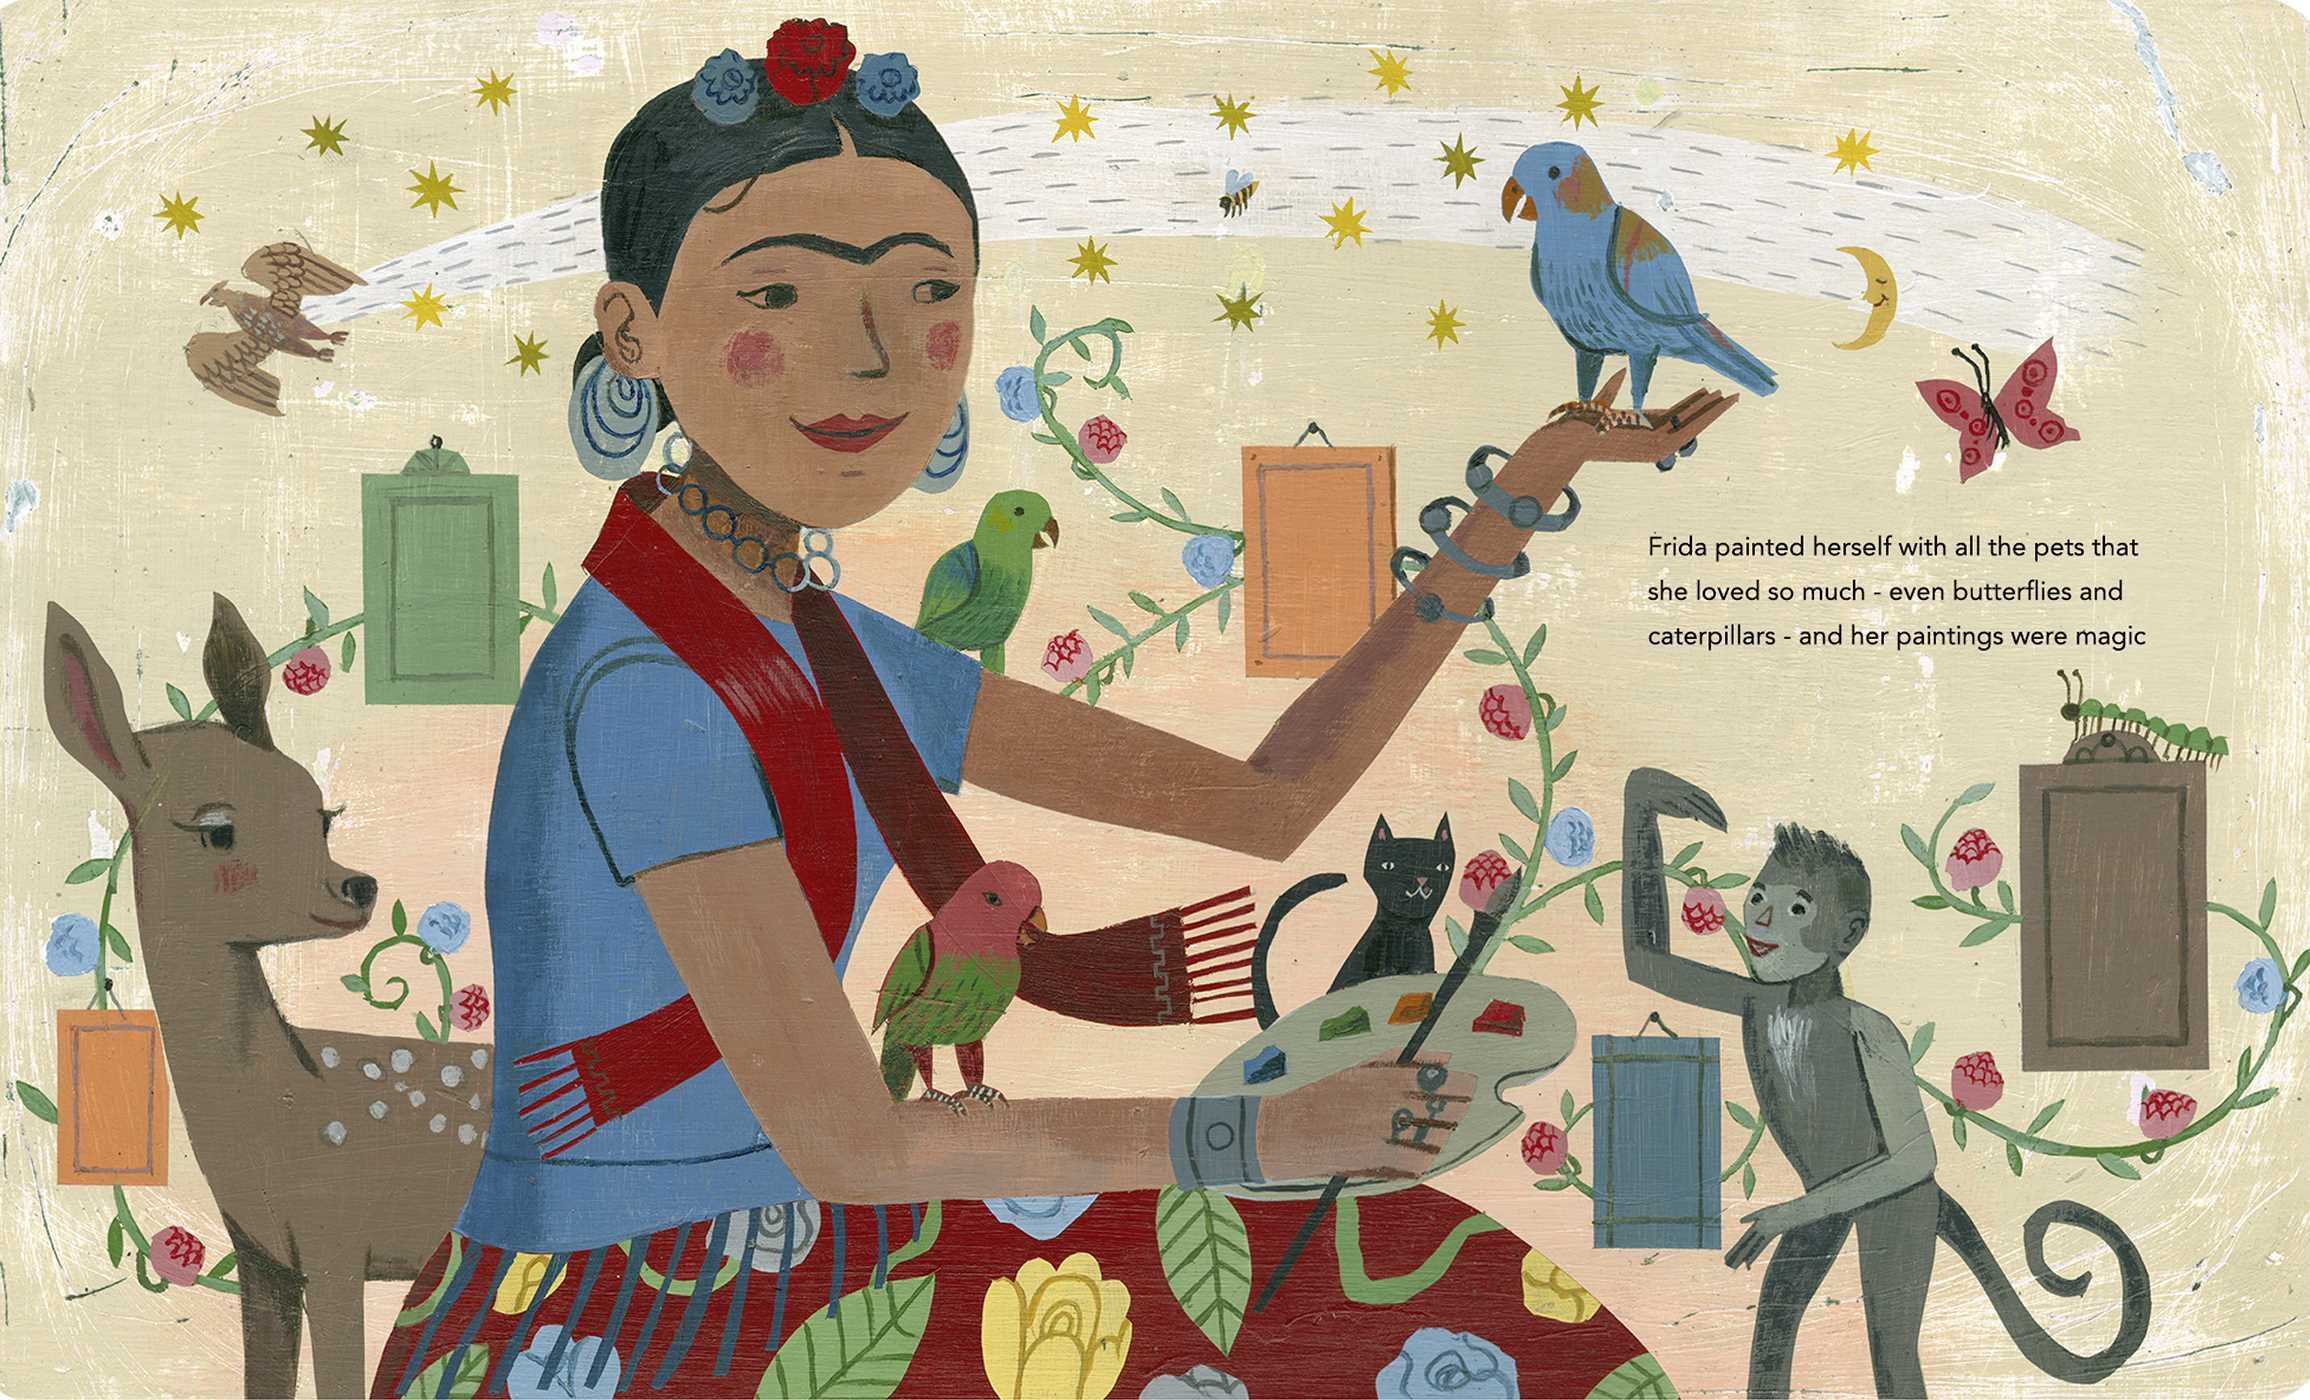 Frida kahlo and her animalitos 9780735842694.in03